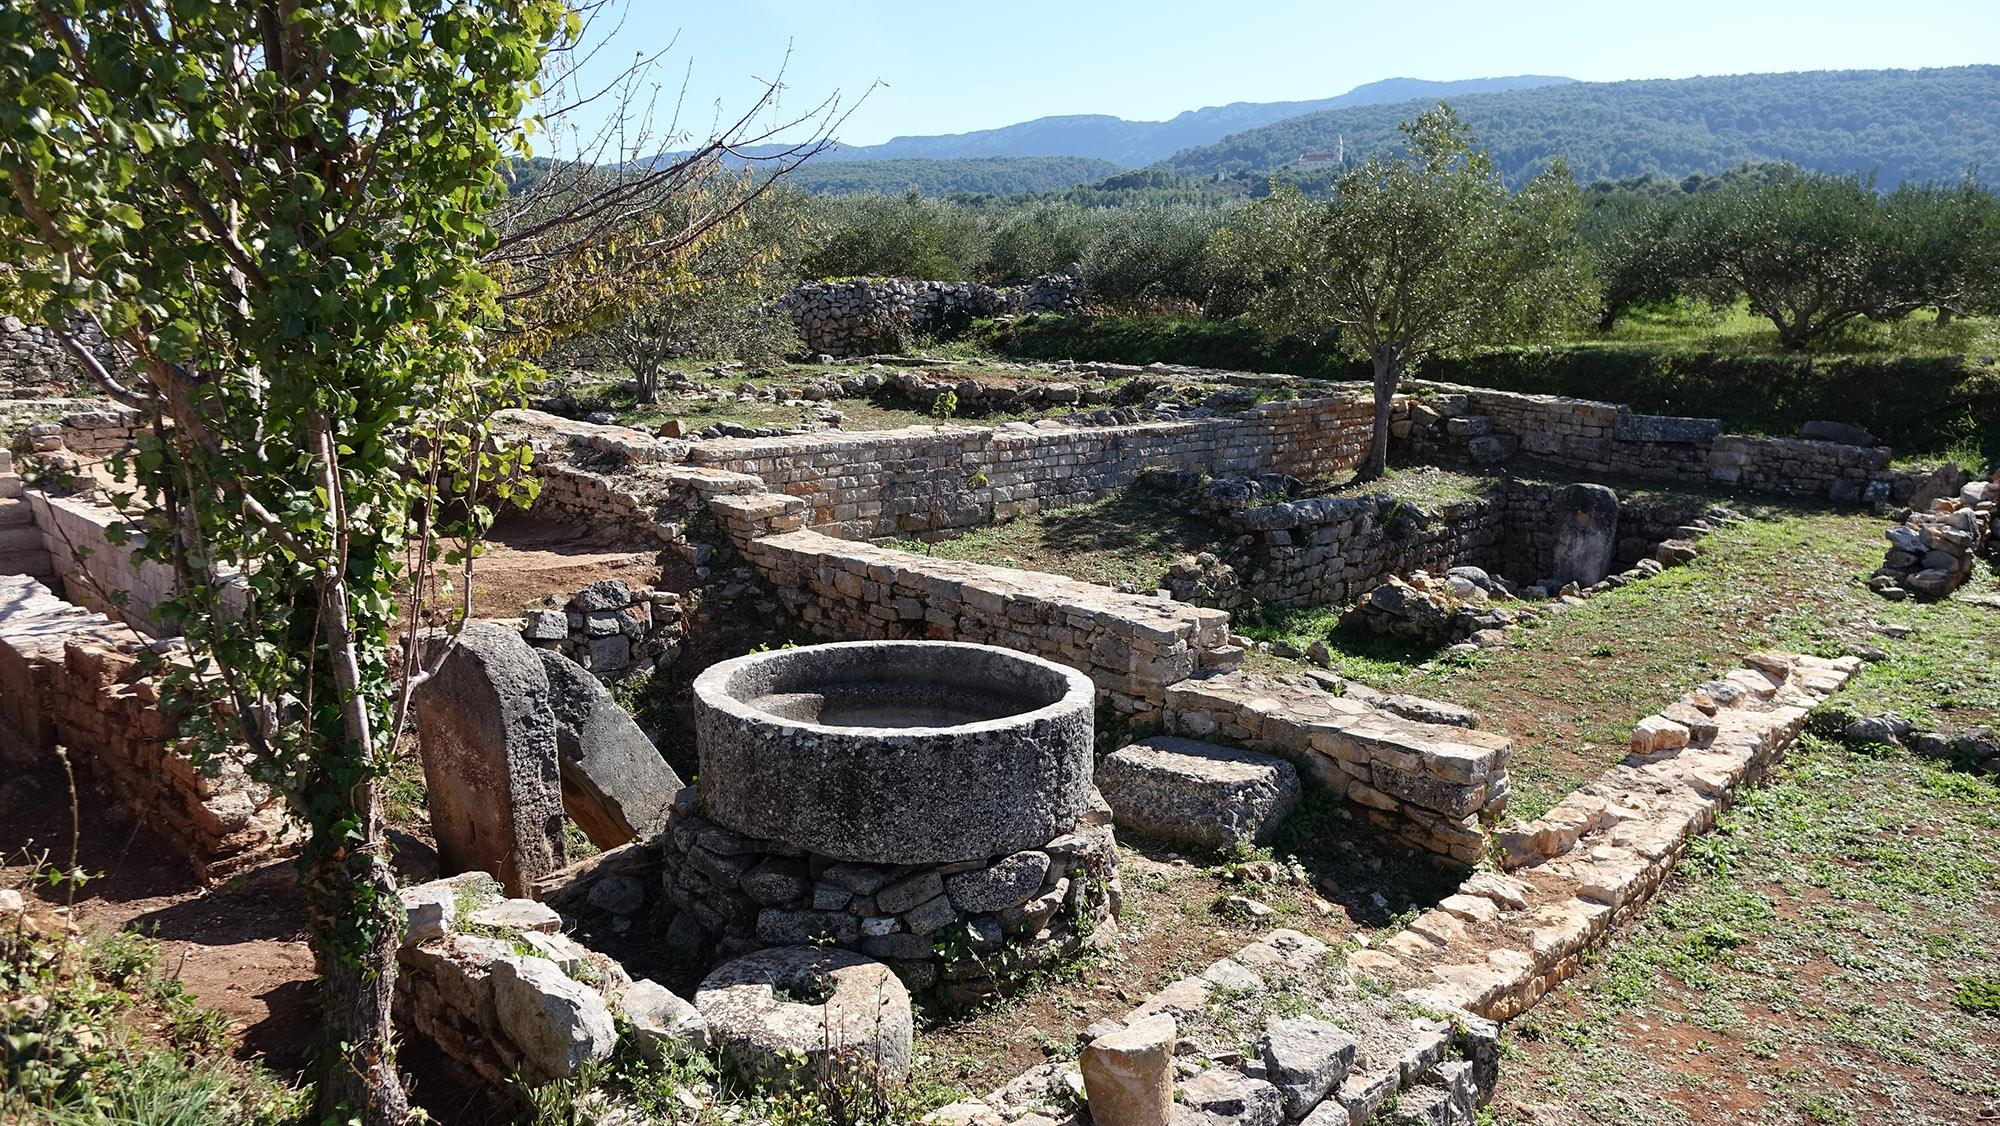 The Stari Grad Plain is full of ancient archaeological sites like this one at Kupinovik. – © Stari Grad Plain